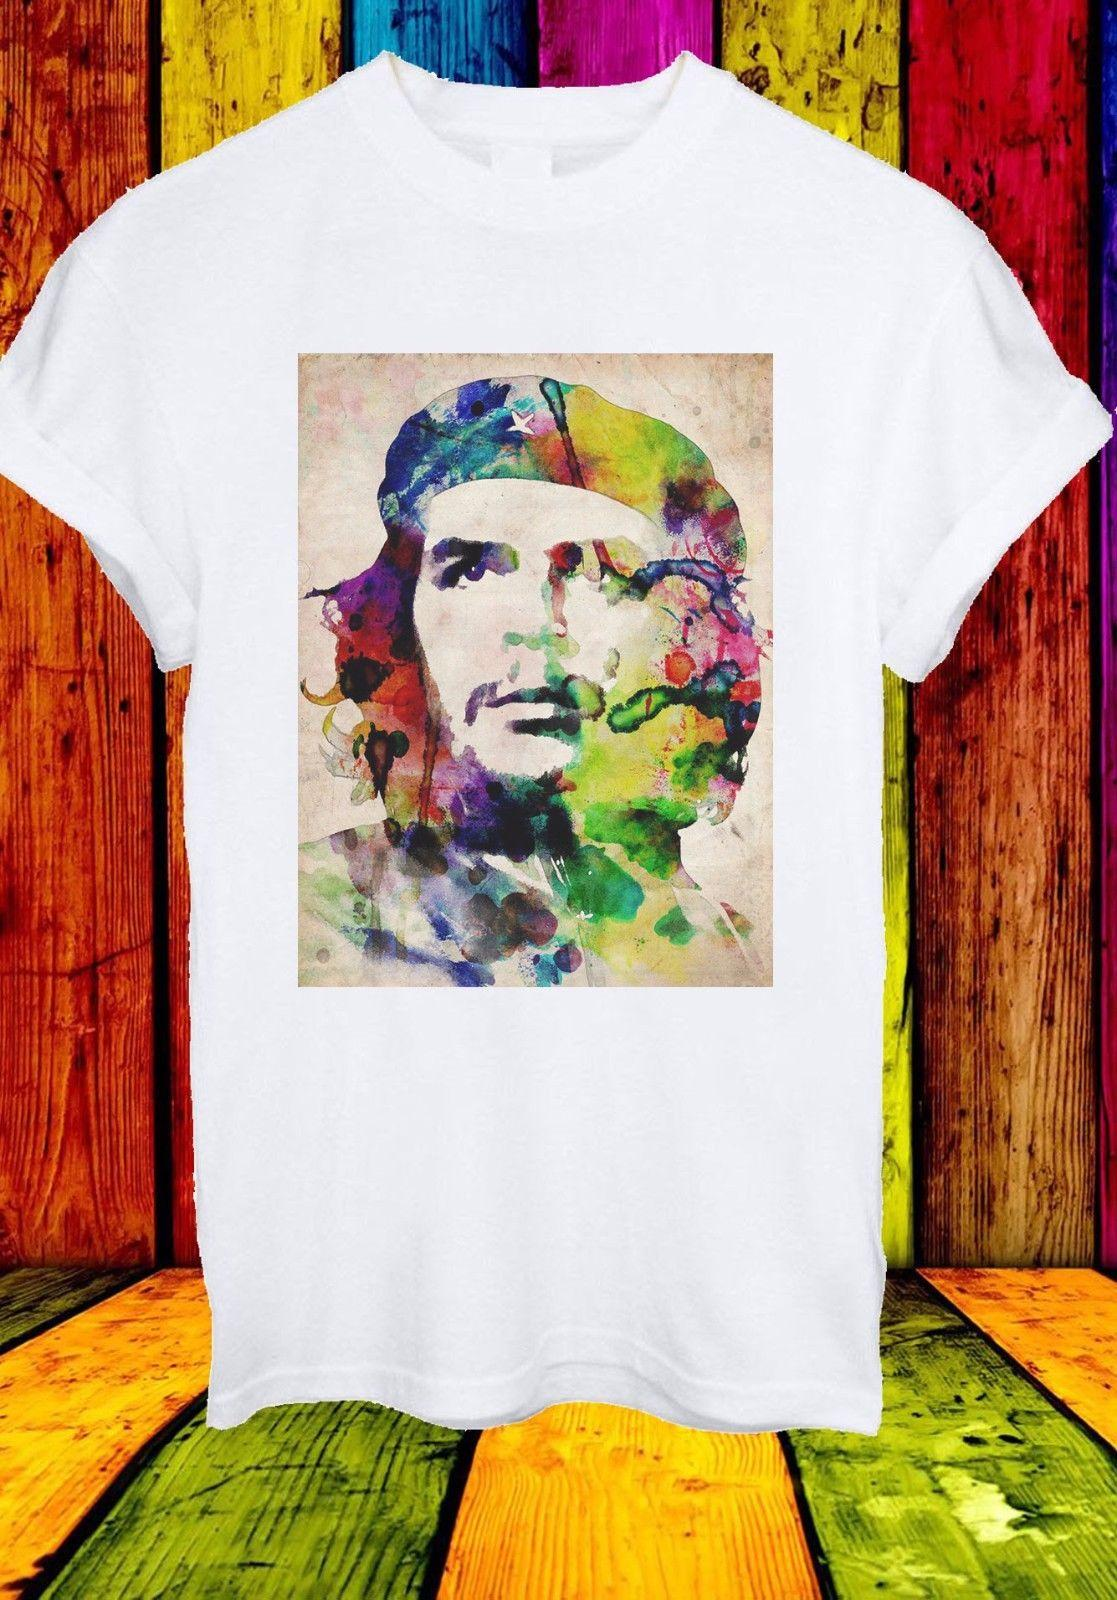 Ernesto Che Guevara Rebel Cuban Revolution Leader Men Women Unisex T-shirt 654 Short Sleeve Plus Size t-shirt